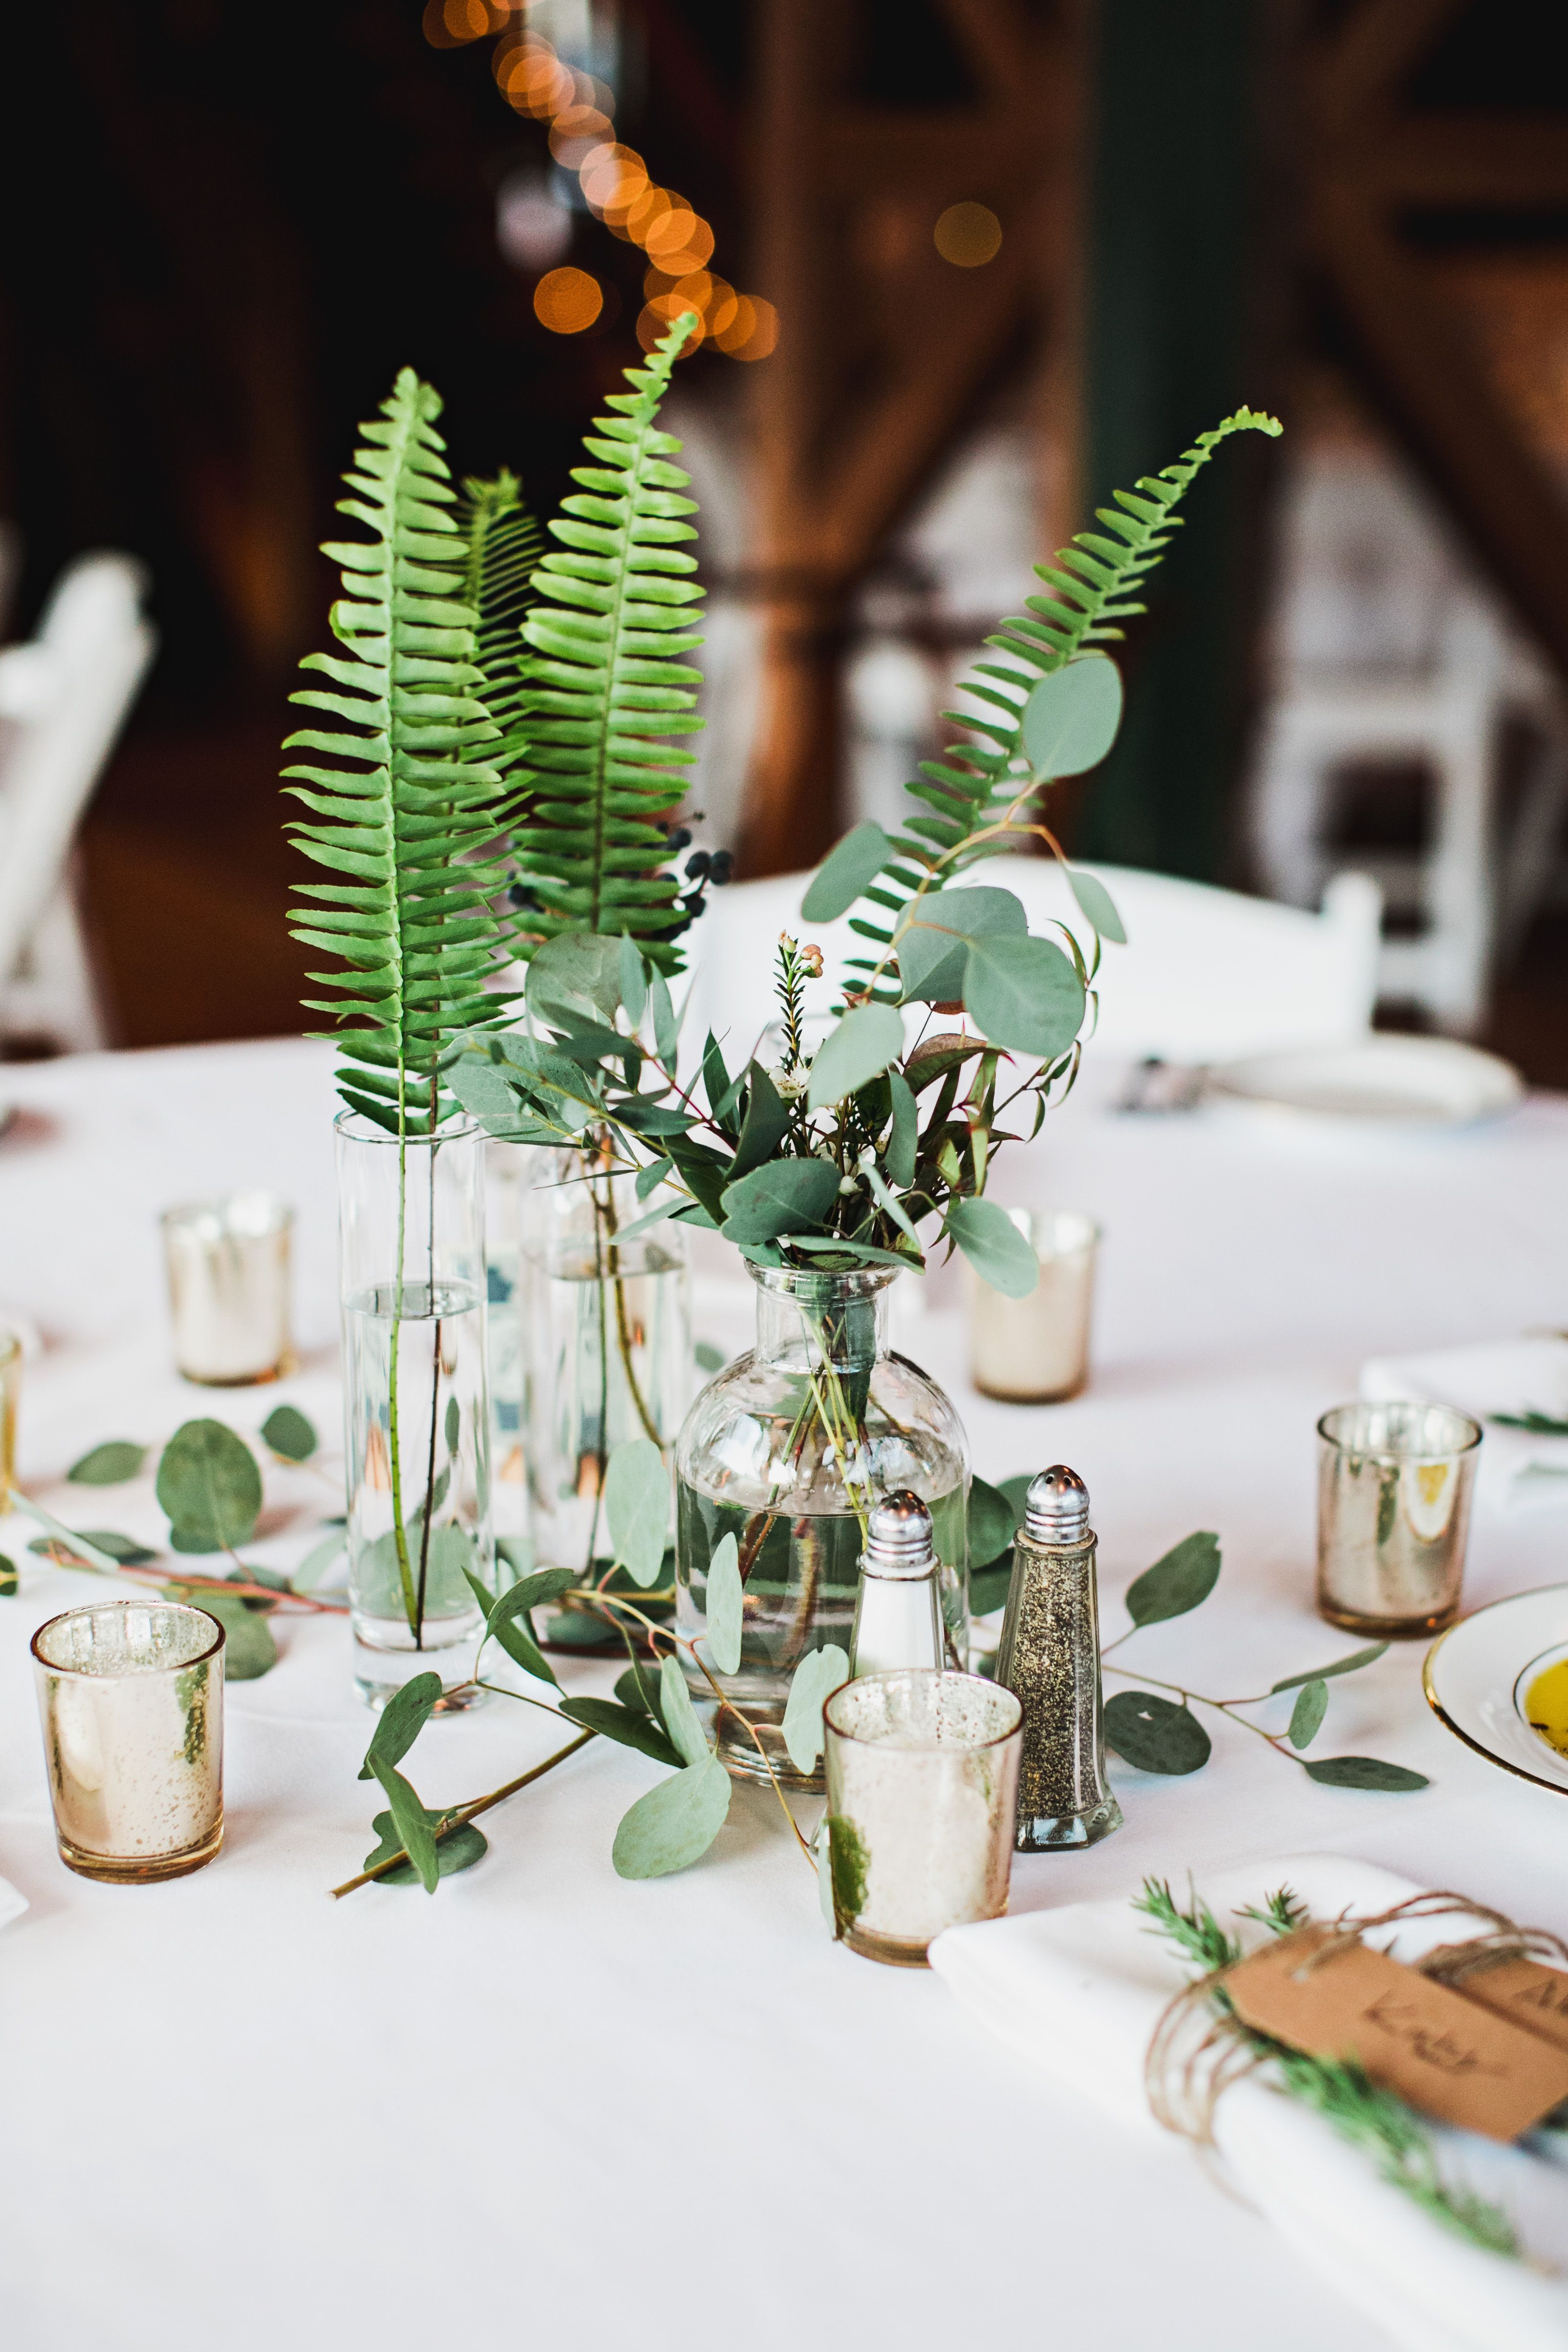 Candles & Greenery Centerpieces for this Winter Wedding